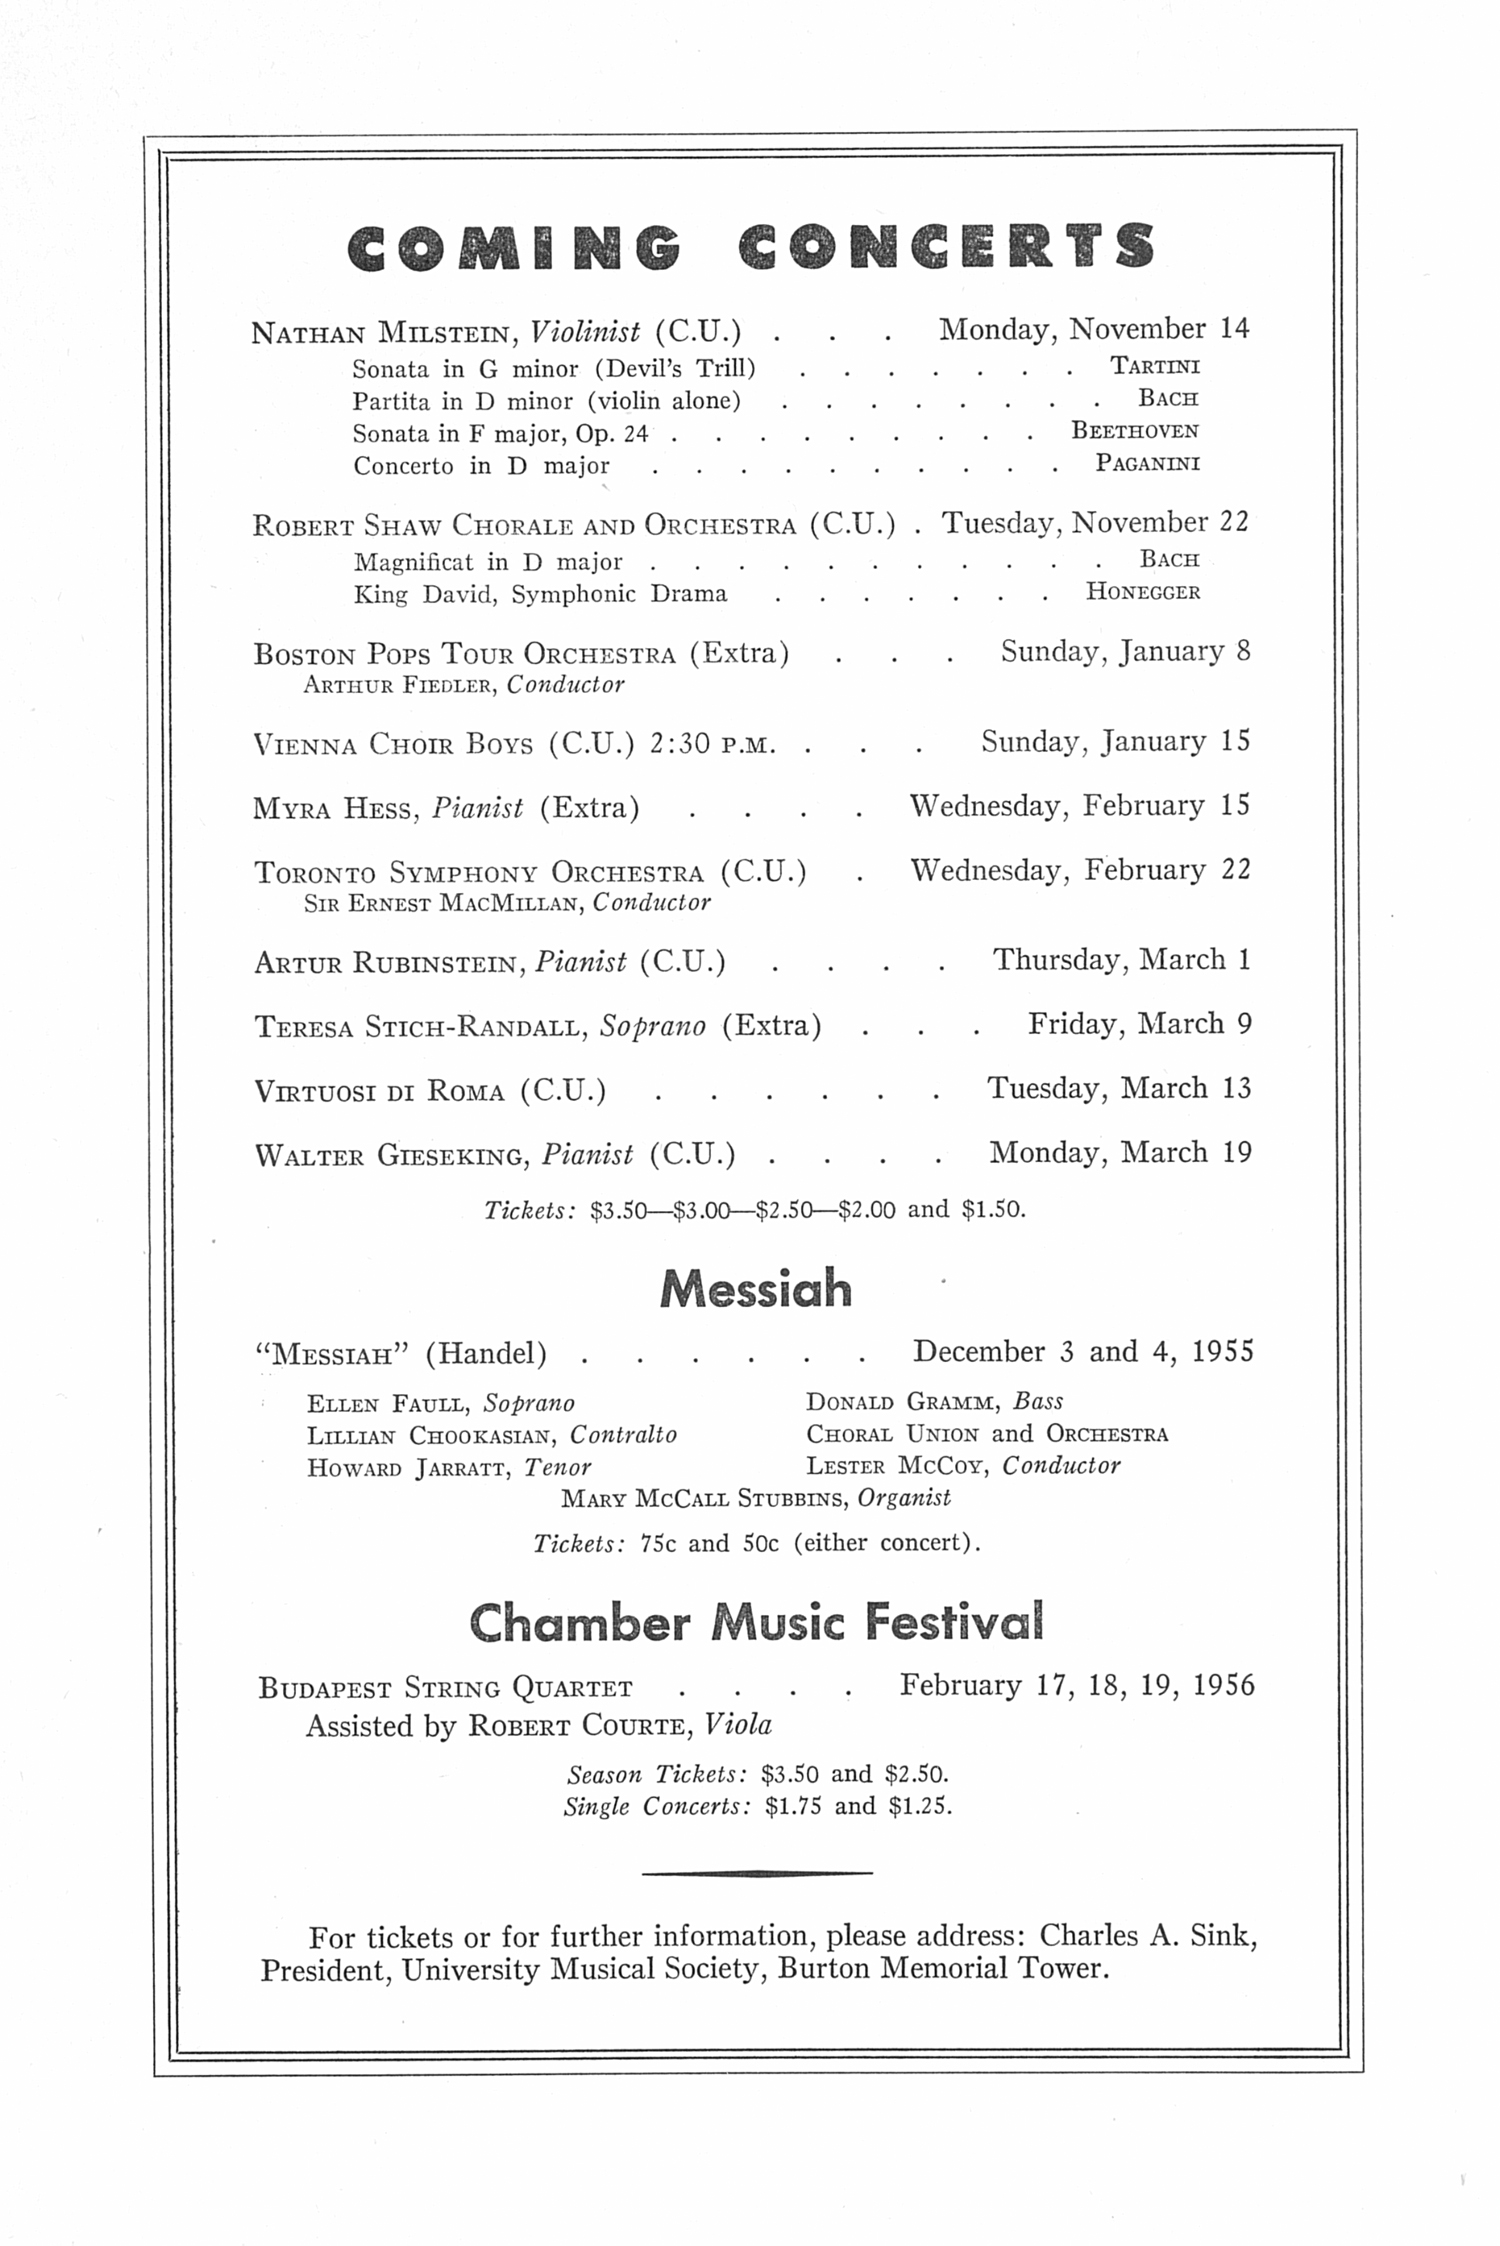 UMS Concert Program, November 9, 1955: Tenth Annual Extra Concert Series -- Herbert Von Karajan And The The Philadelphia Orchestraof London image